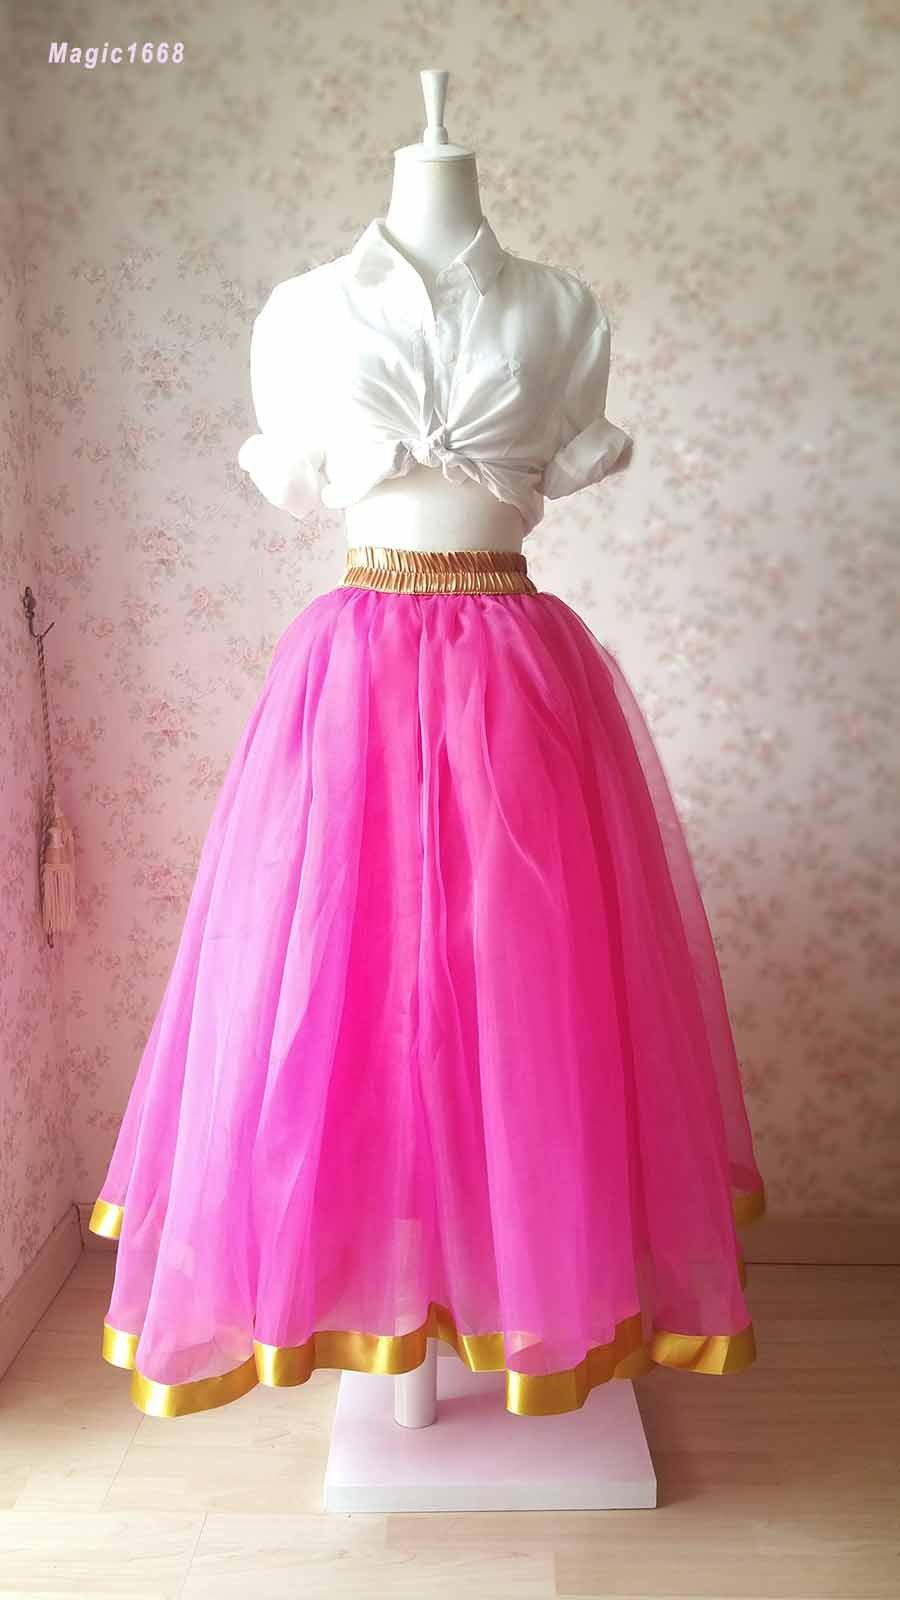 Fuchsia and Golden Tulle Long skirt Tulle Mesh Princess Skirt, Ballet Skirt NWT